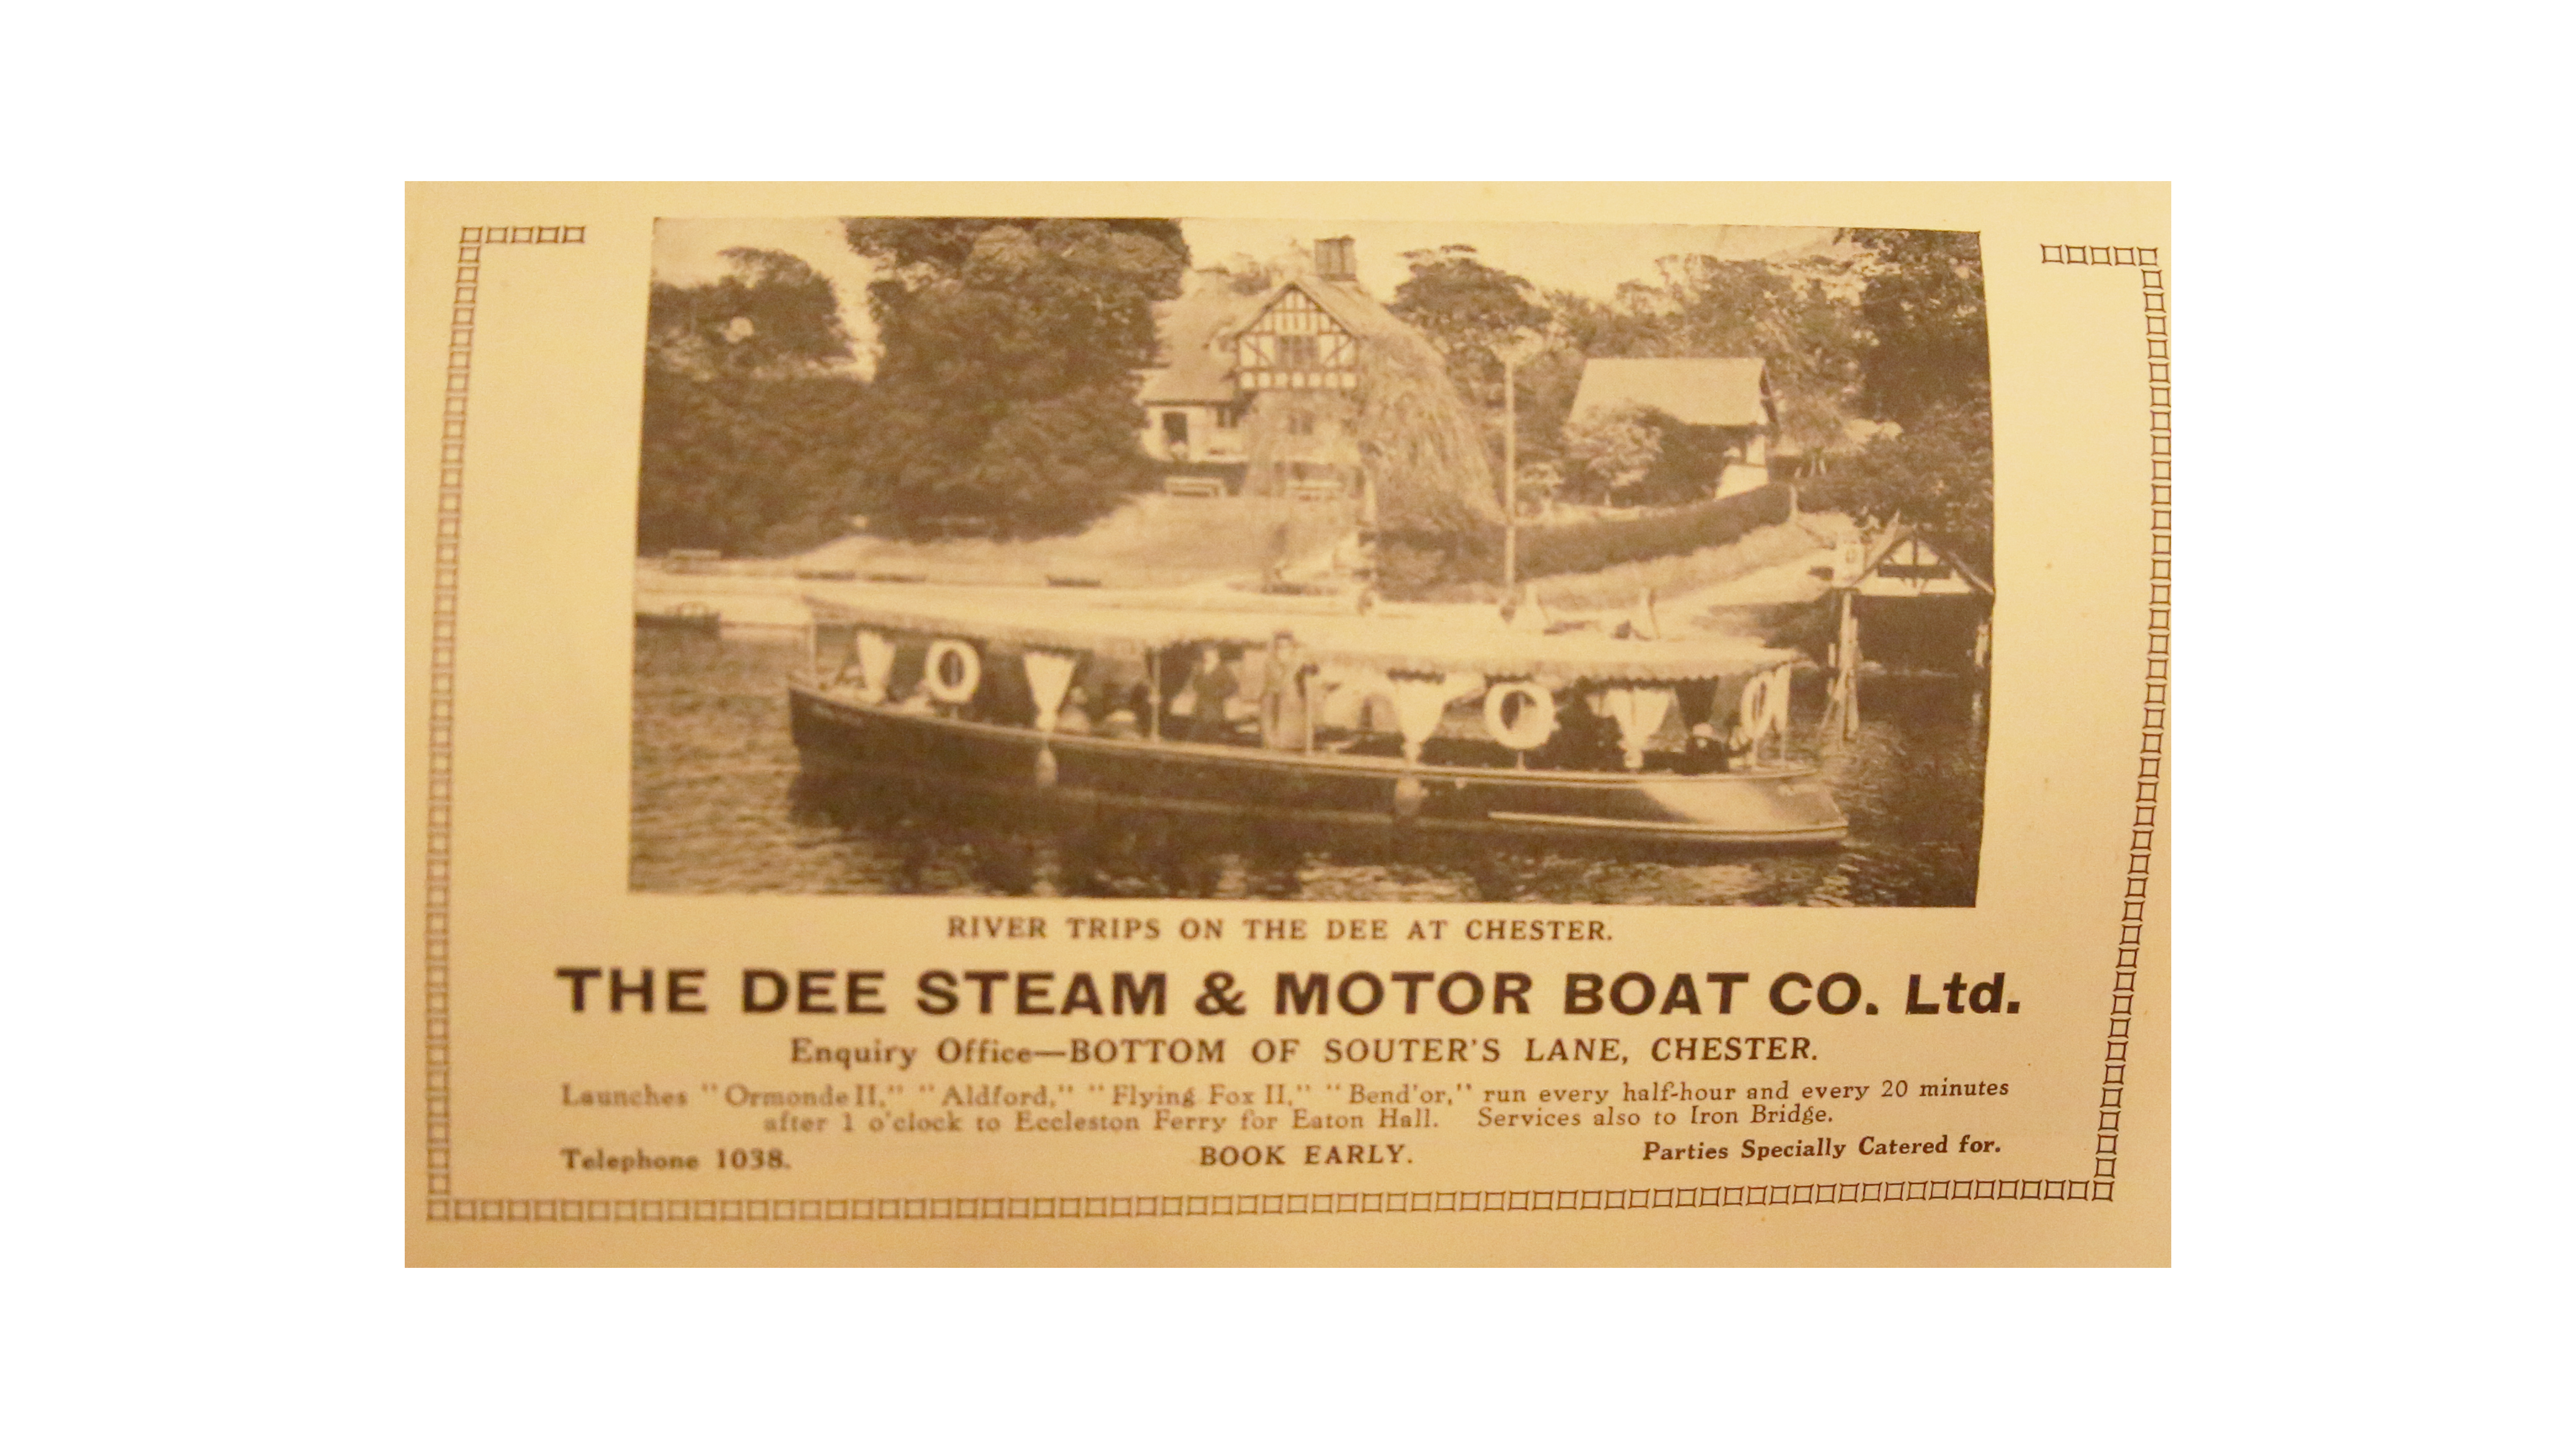 Dee steam and motor boat